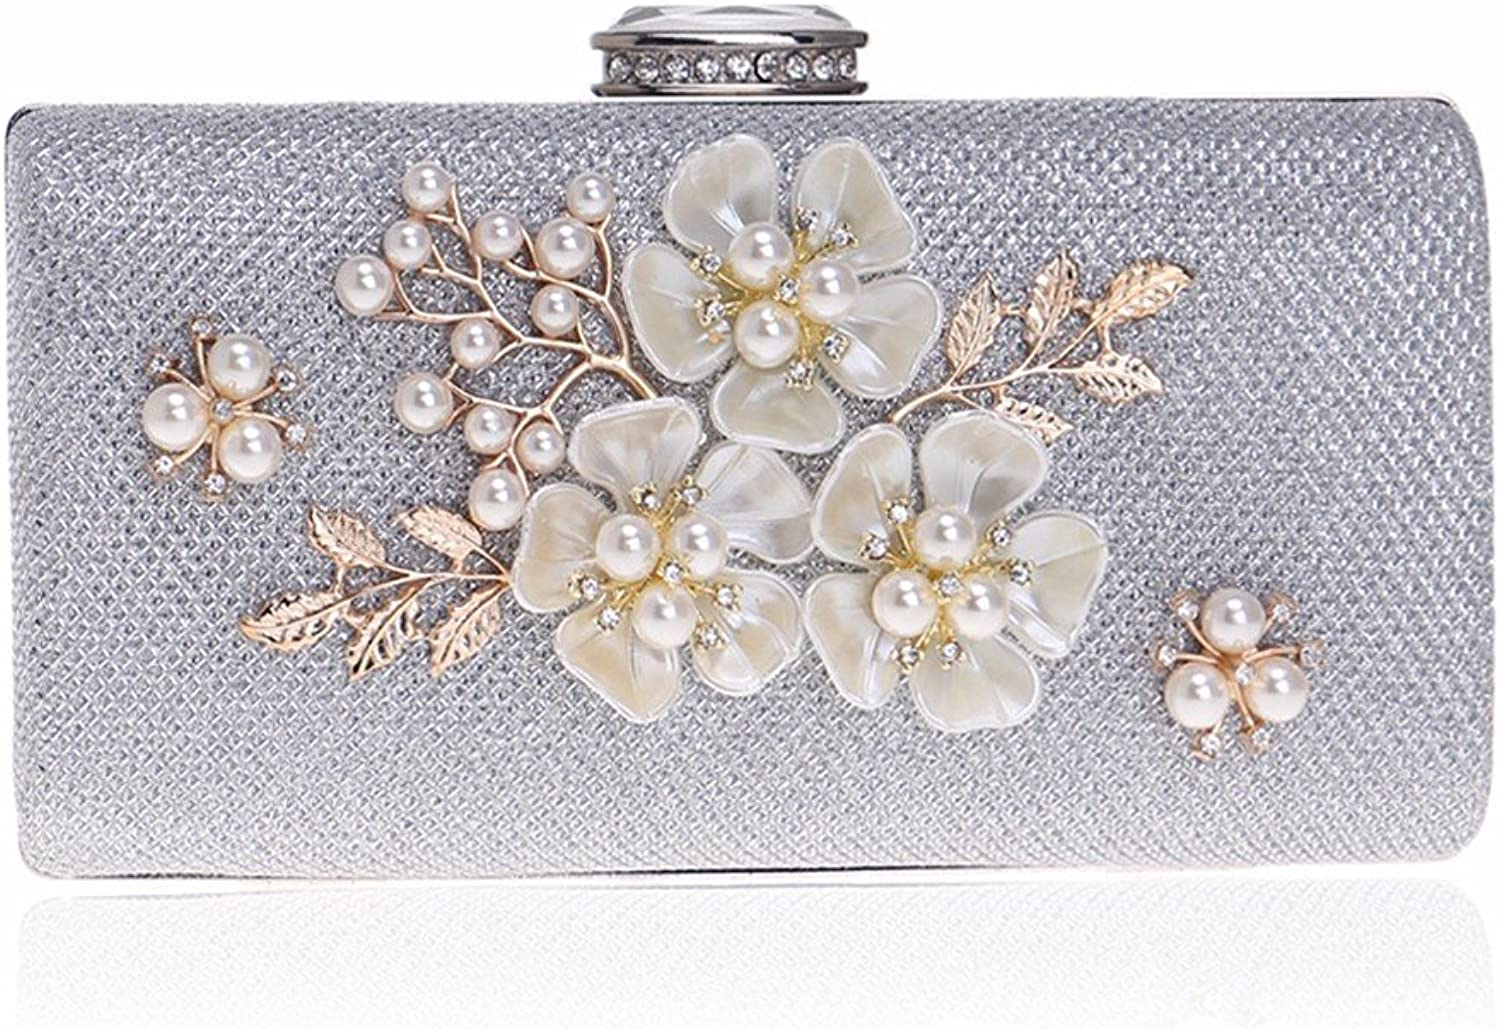 XJTNLB European and American Dinner Bag Pearl Evening Bag Ladies Dress Evening Clutch,Silvery